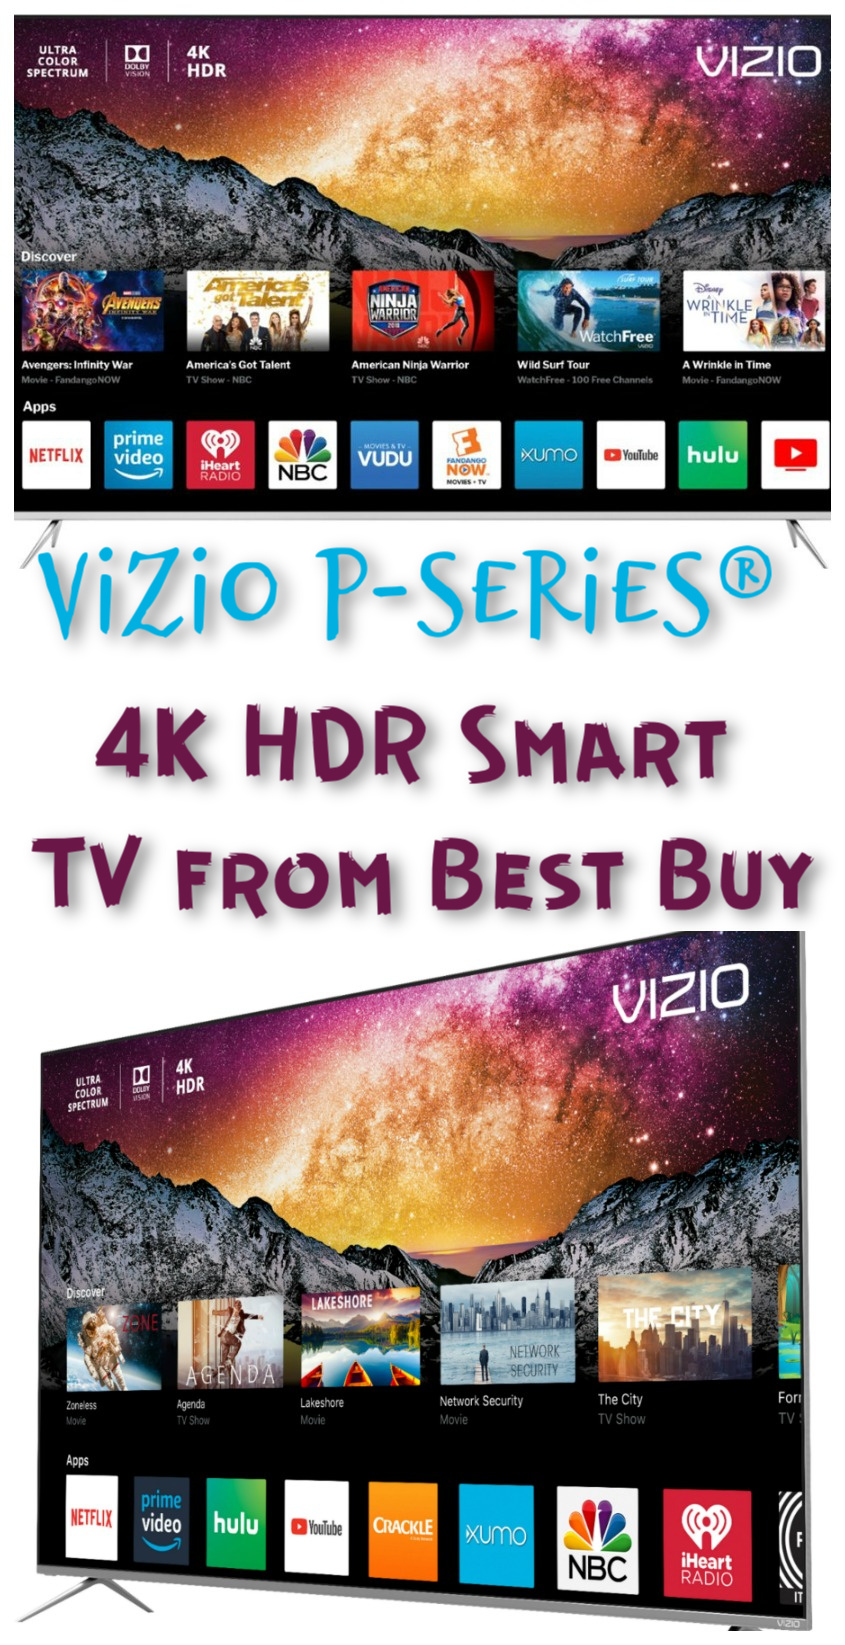 Get the Greatest Entertainment Experience with VIZIO P-Series® 4K HDR Smart TV #BestBuy #ad #Vizio #technology